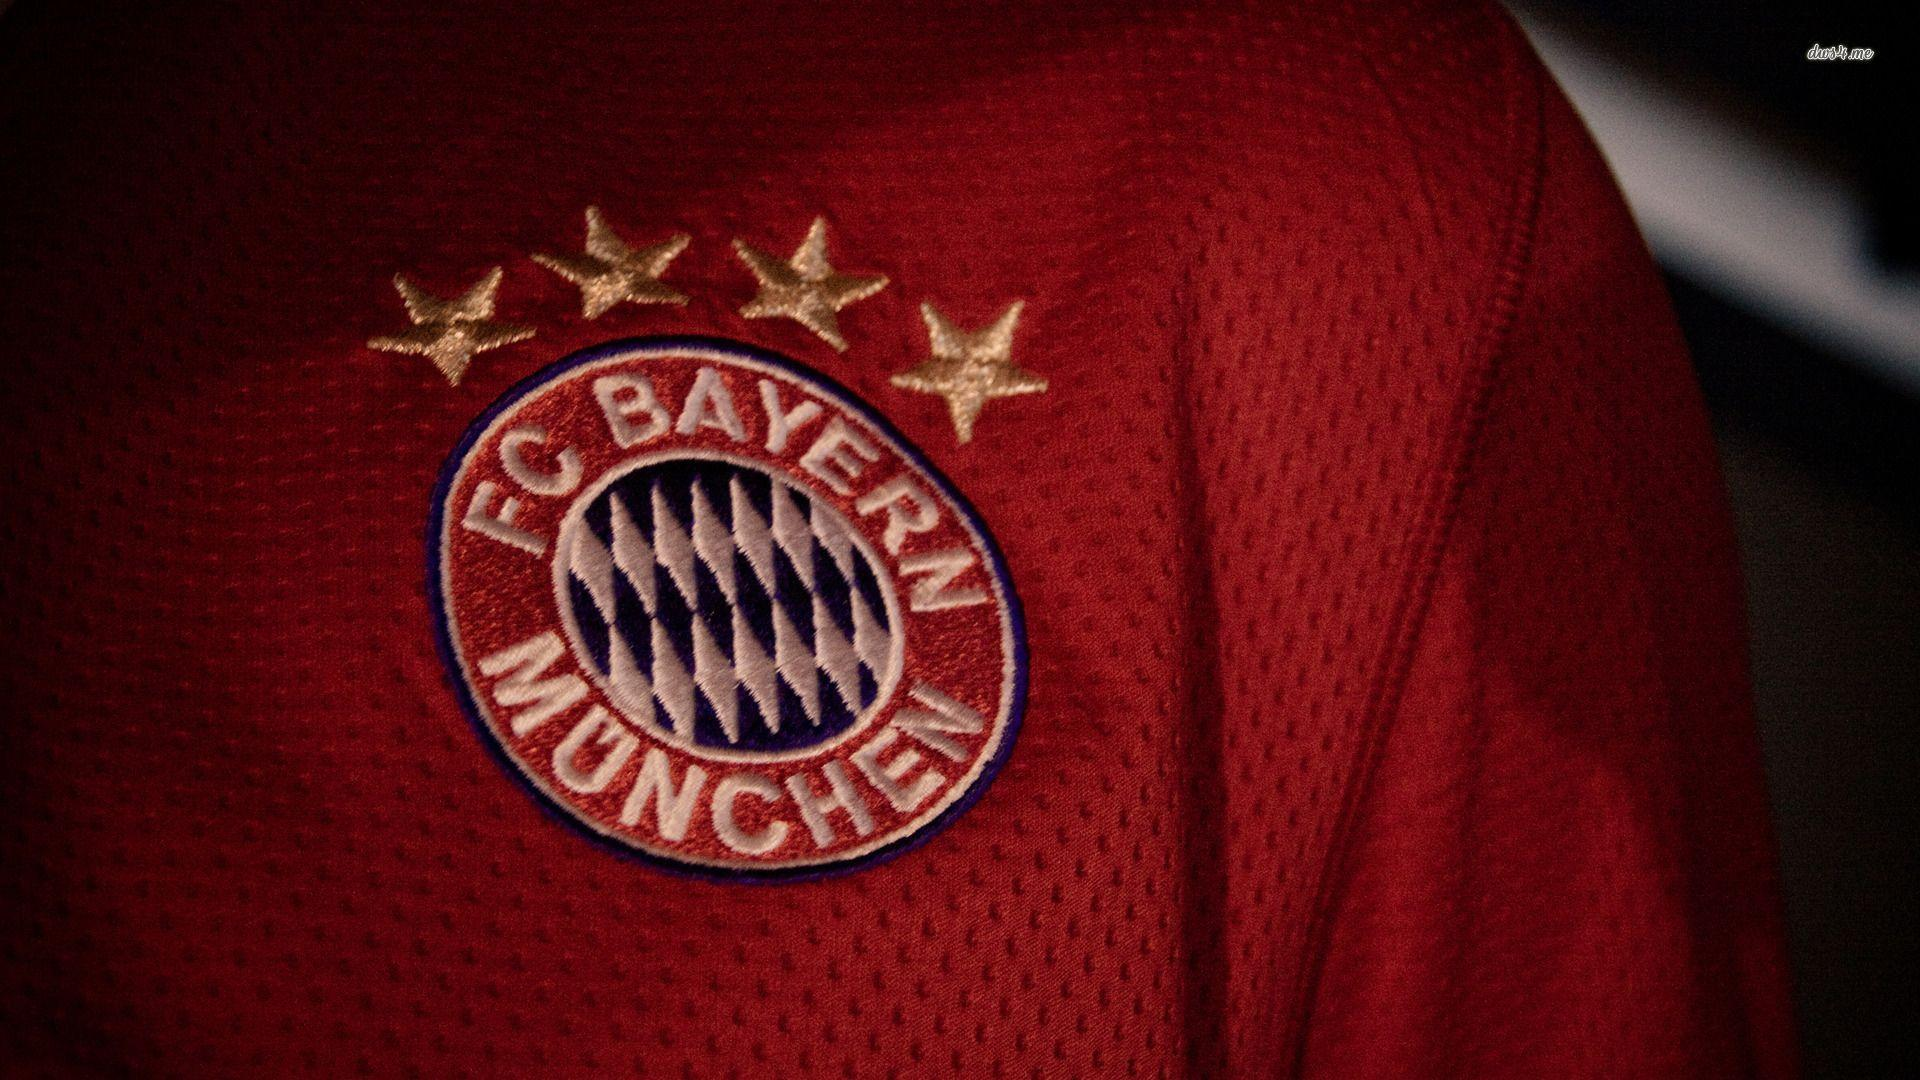 FC Bayern Munich Windows 8.1 Theme and Wallpapers | All for ...